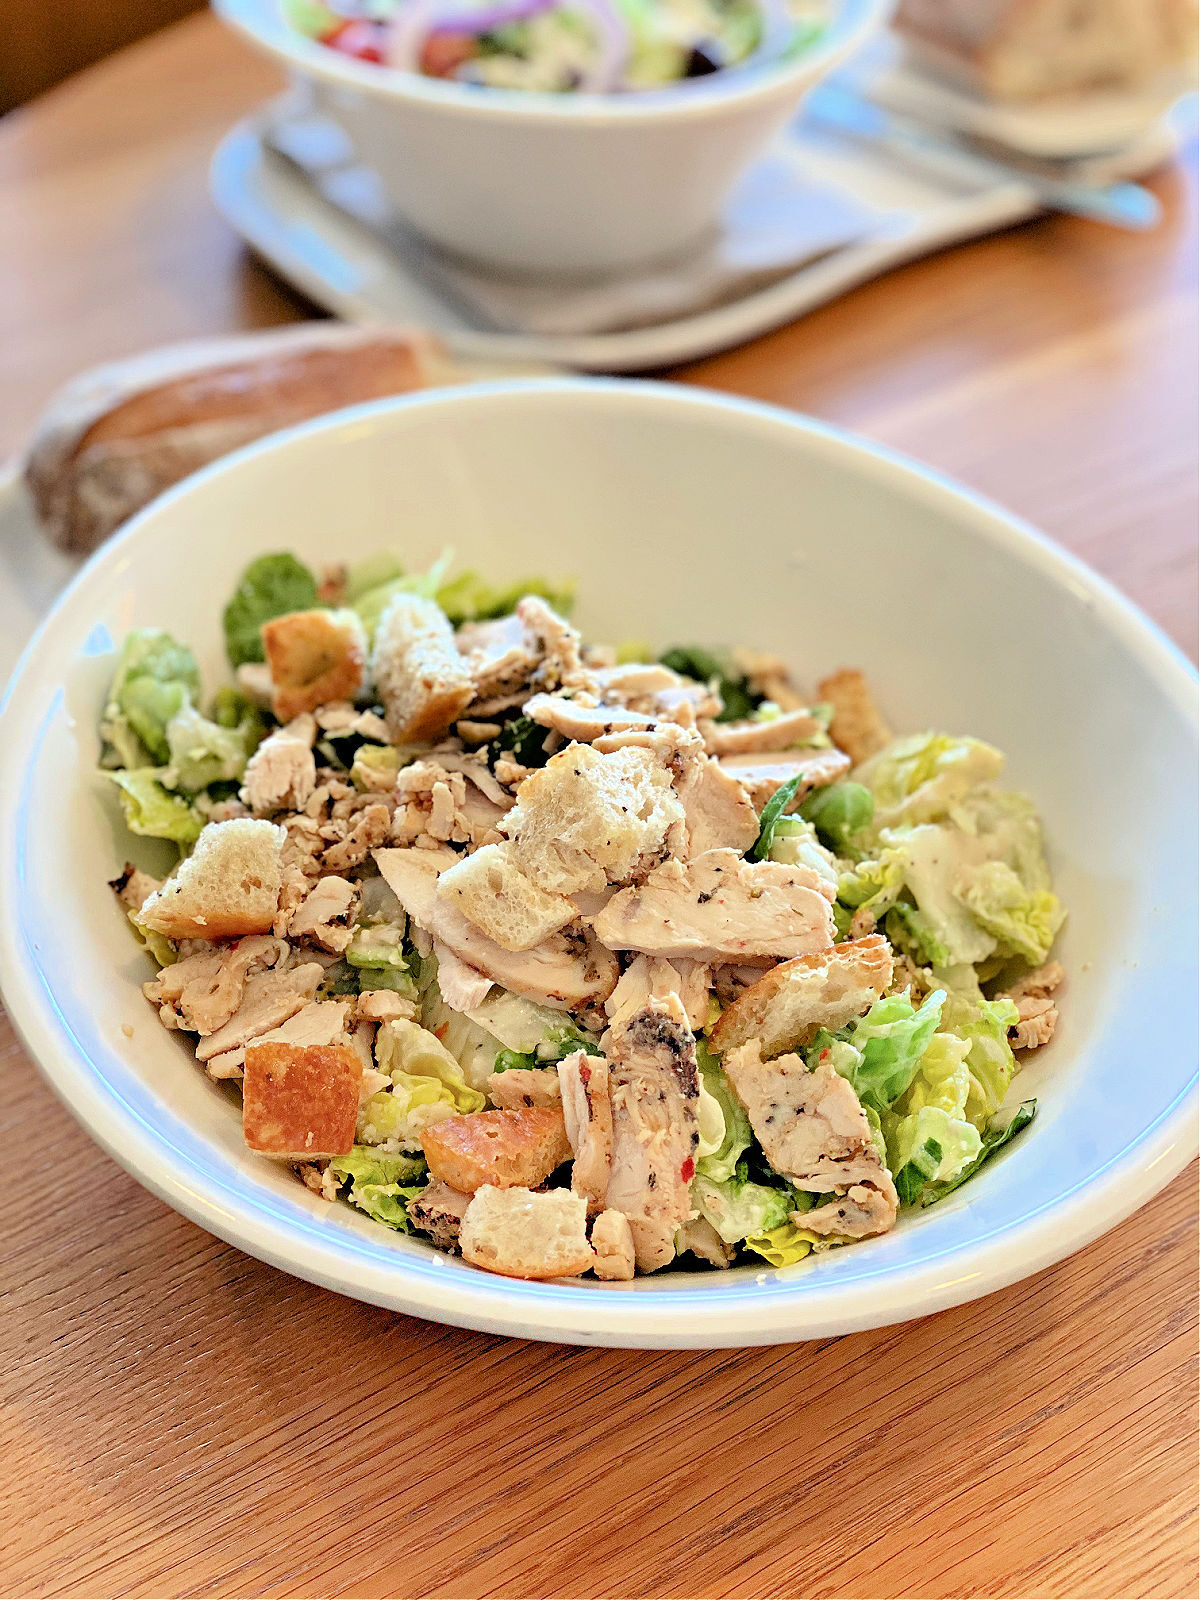 Bowl of Panera's Chicken Caesar Salad and some French bread.